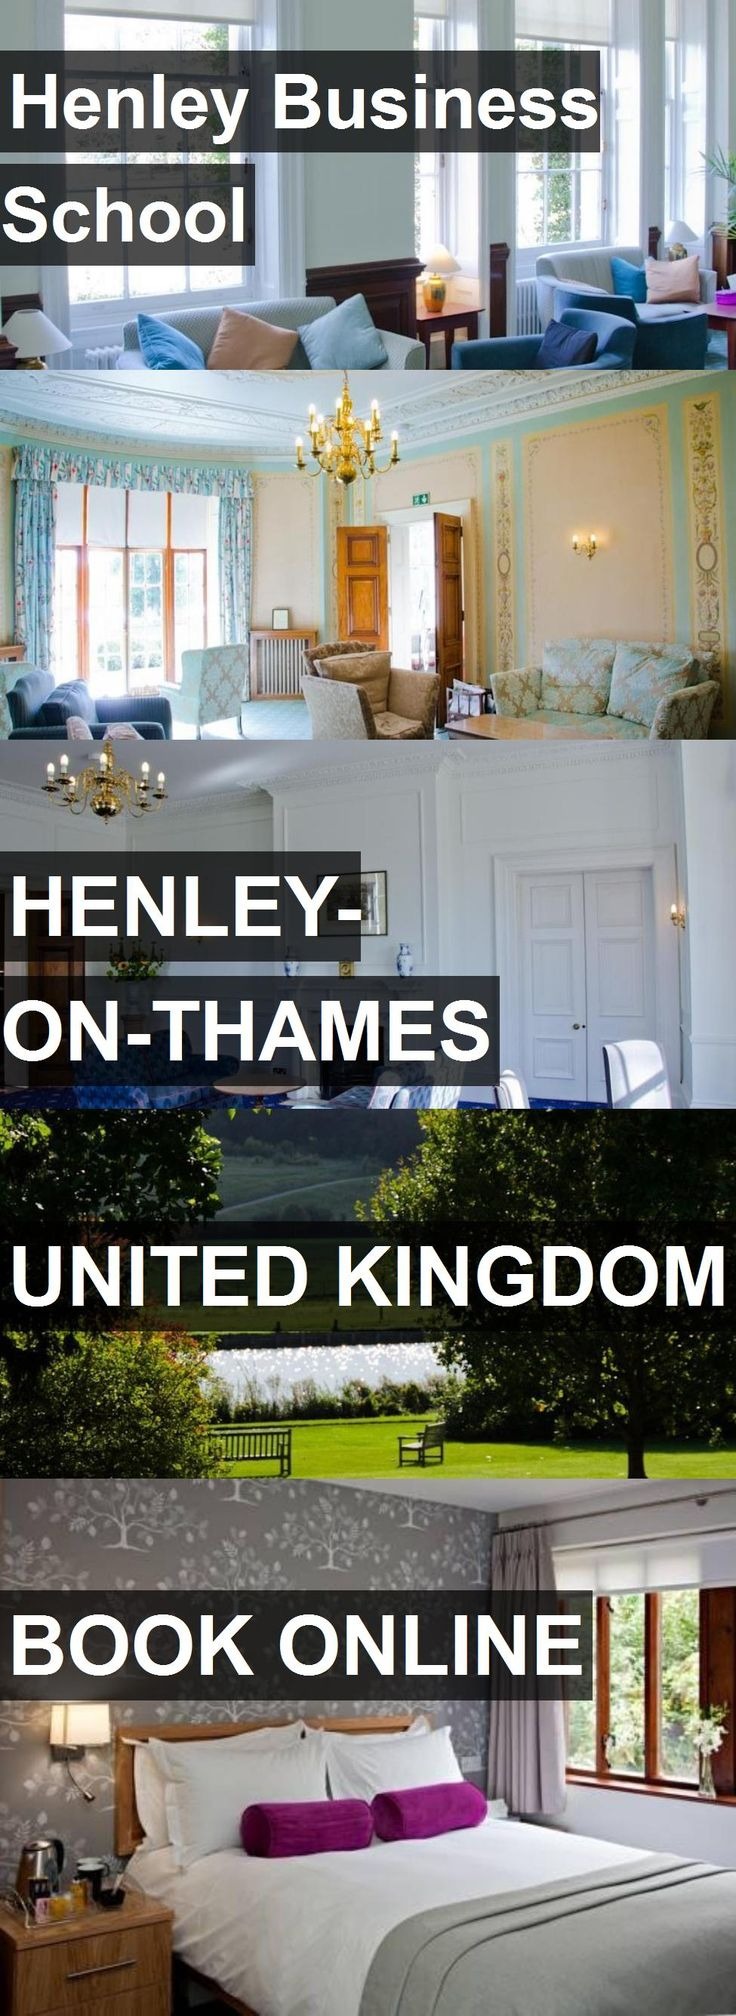 Hotel Henley Business School in Henley-on-Thames, United Kingdom. For more information, photos, reviews and best prices please follow the link. #UnitedKingdom #Henley-on-Thames #hotel #travel #vacation